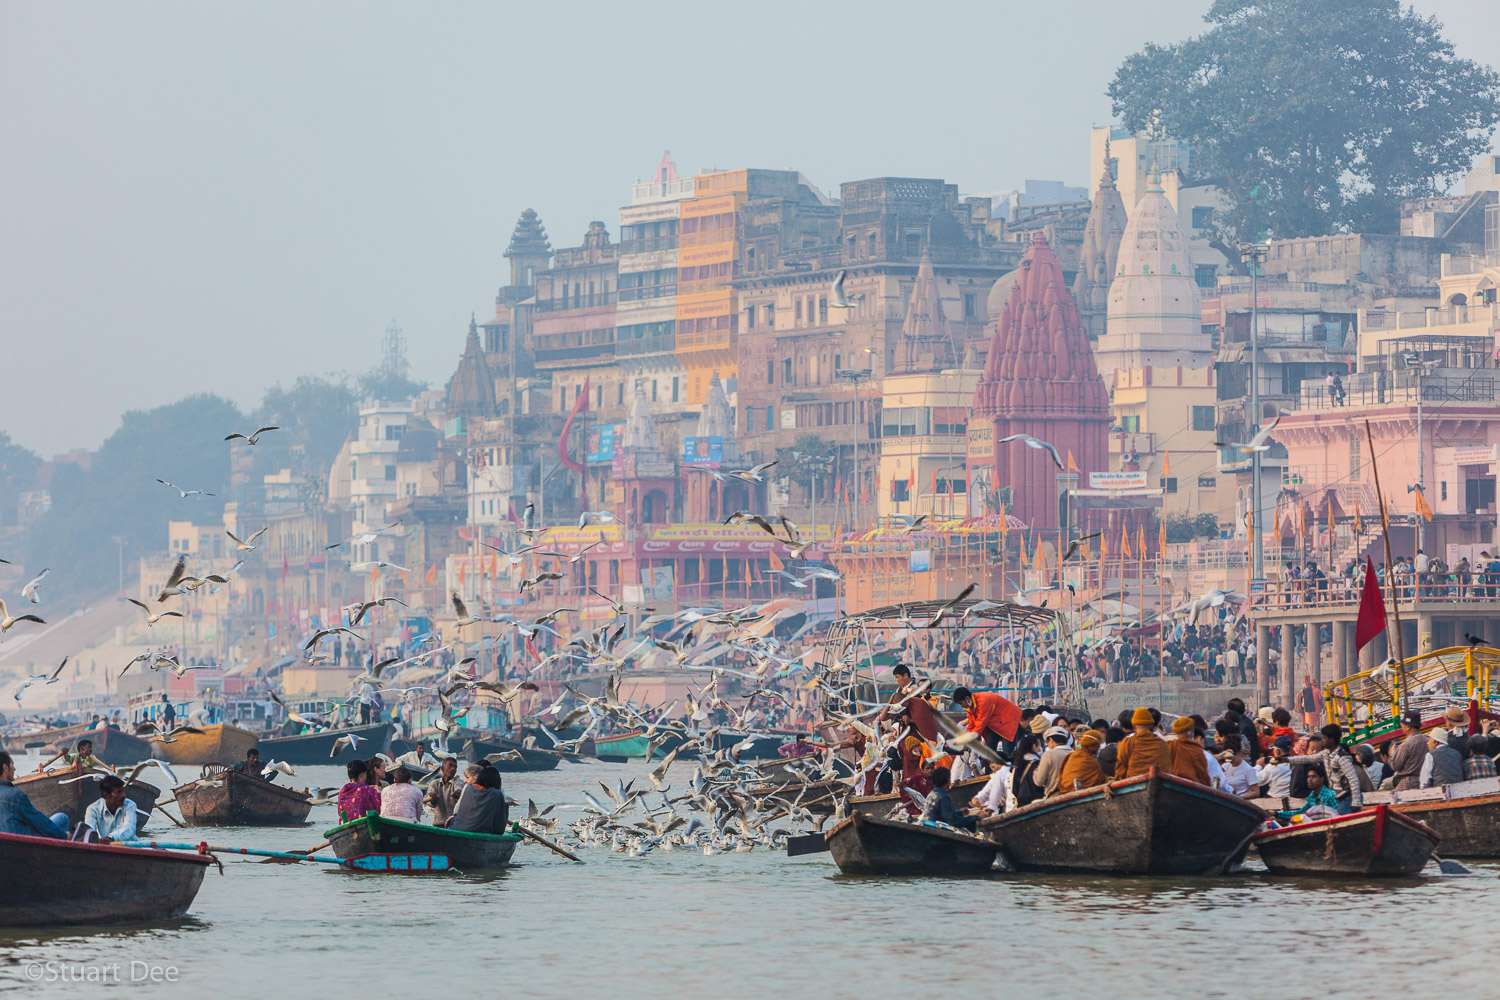 Early morning at the Ganges, Varanasi, Uttar Pradesh, India